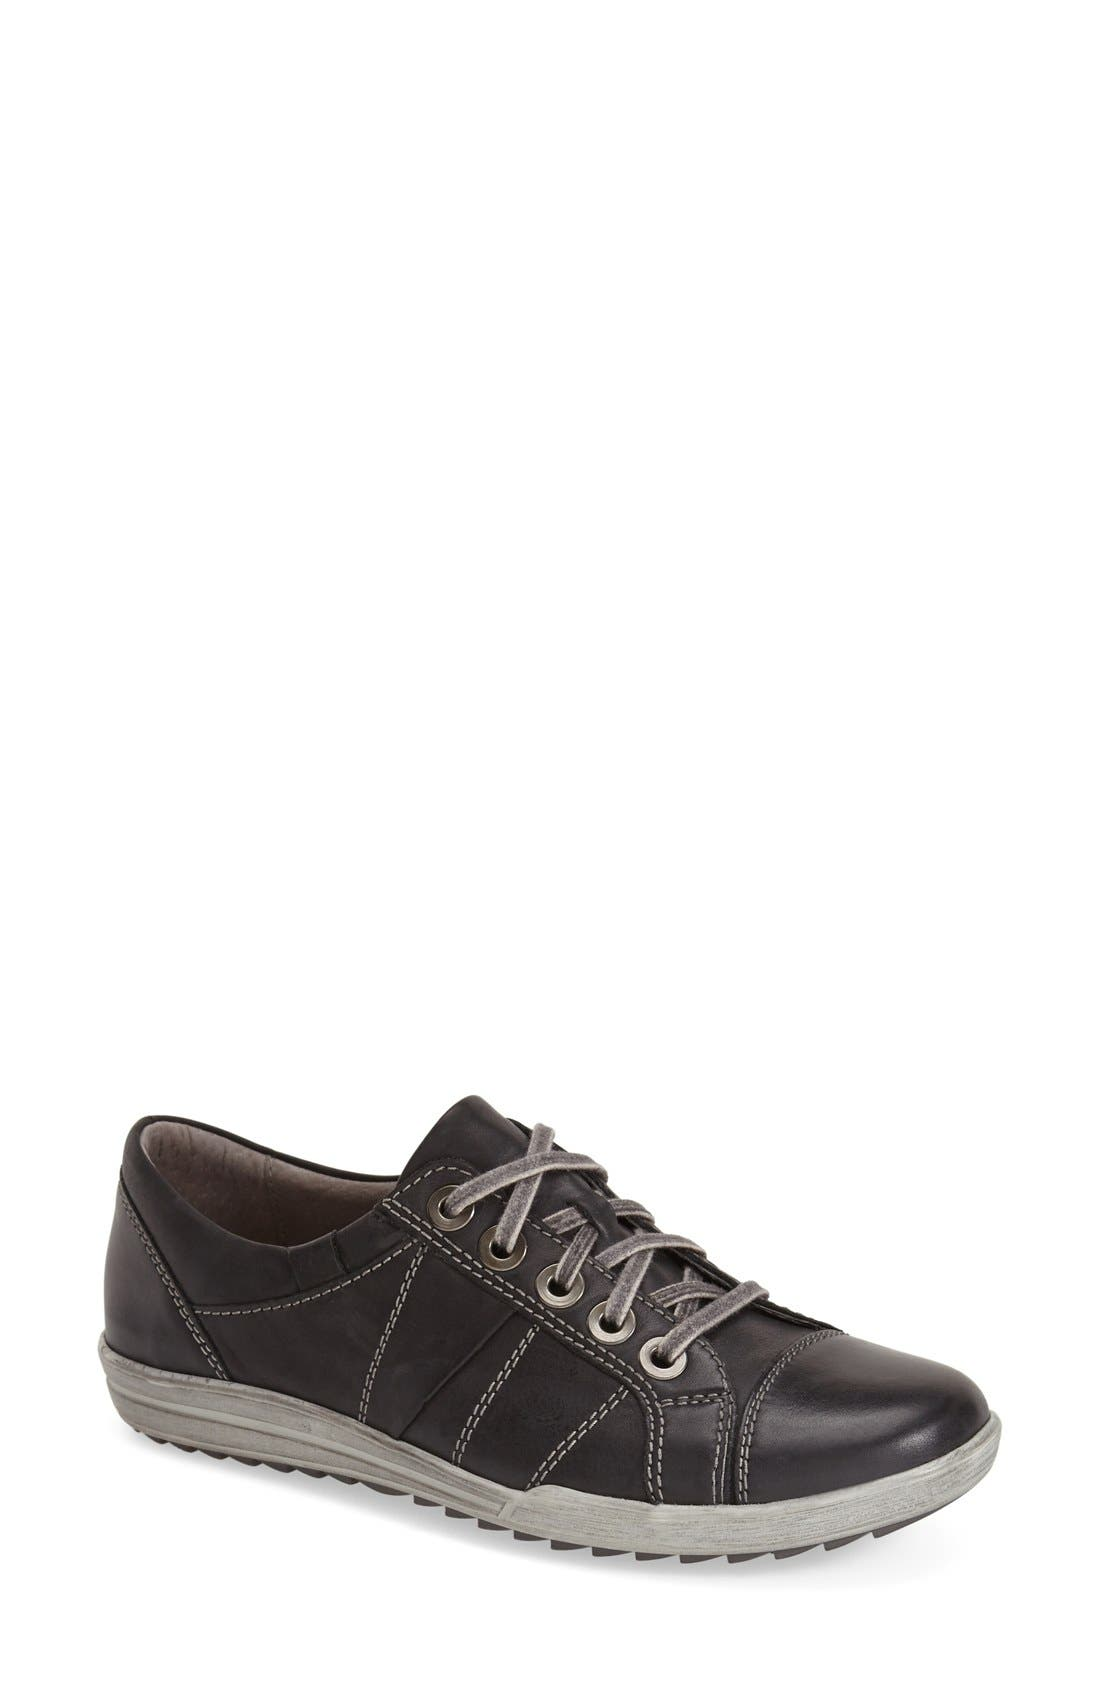 'Dany 05' Leather Sneaker,                             Main thumbnail 3, color,